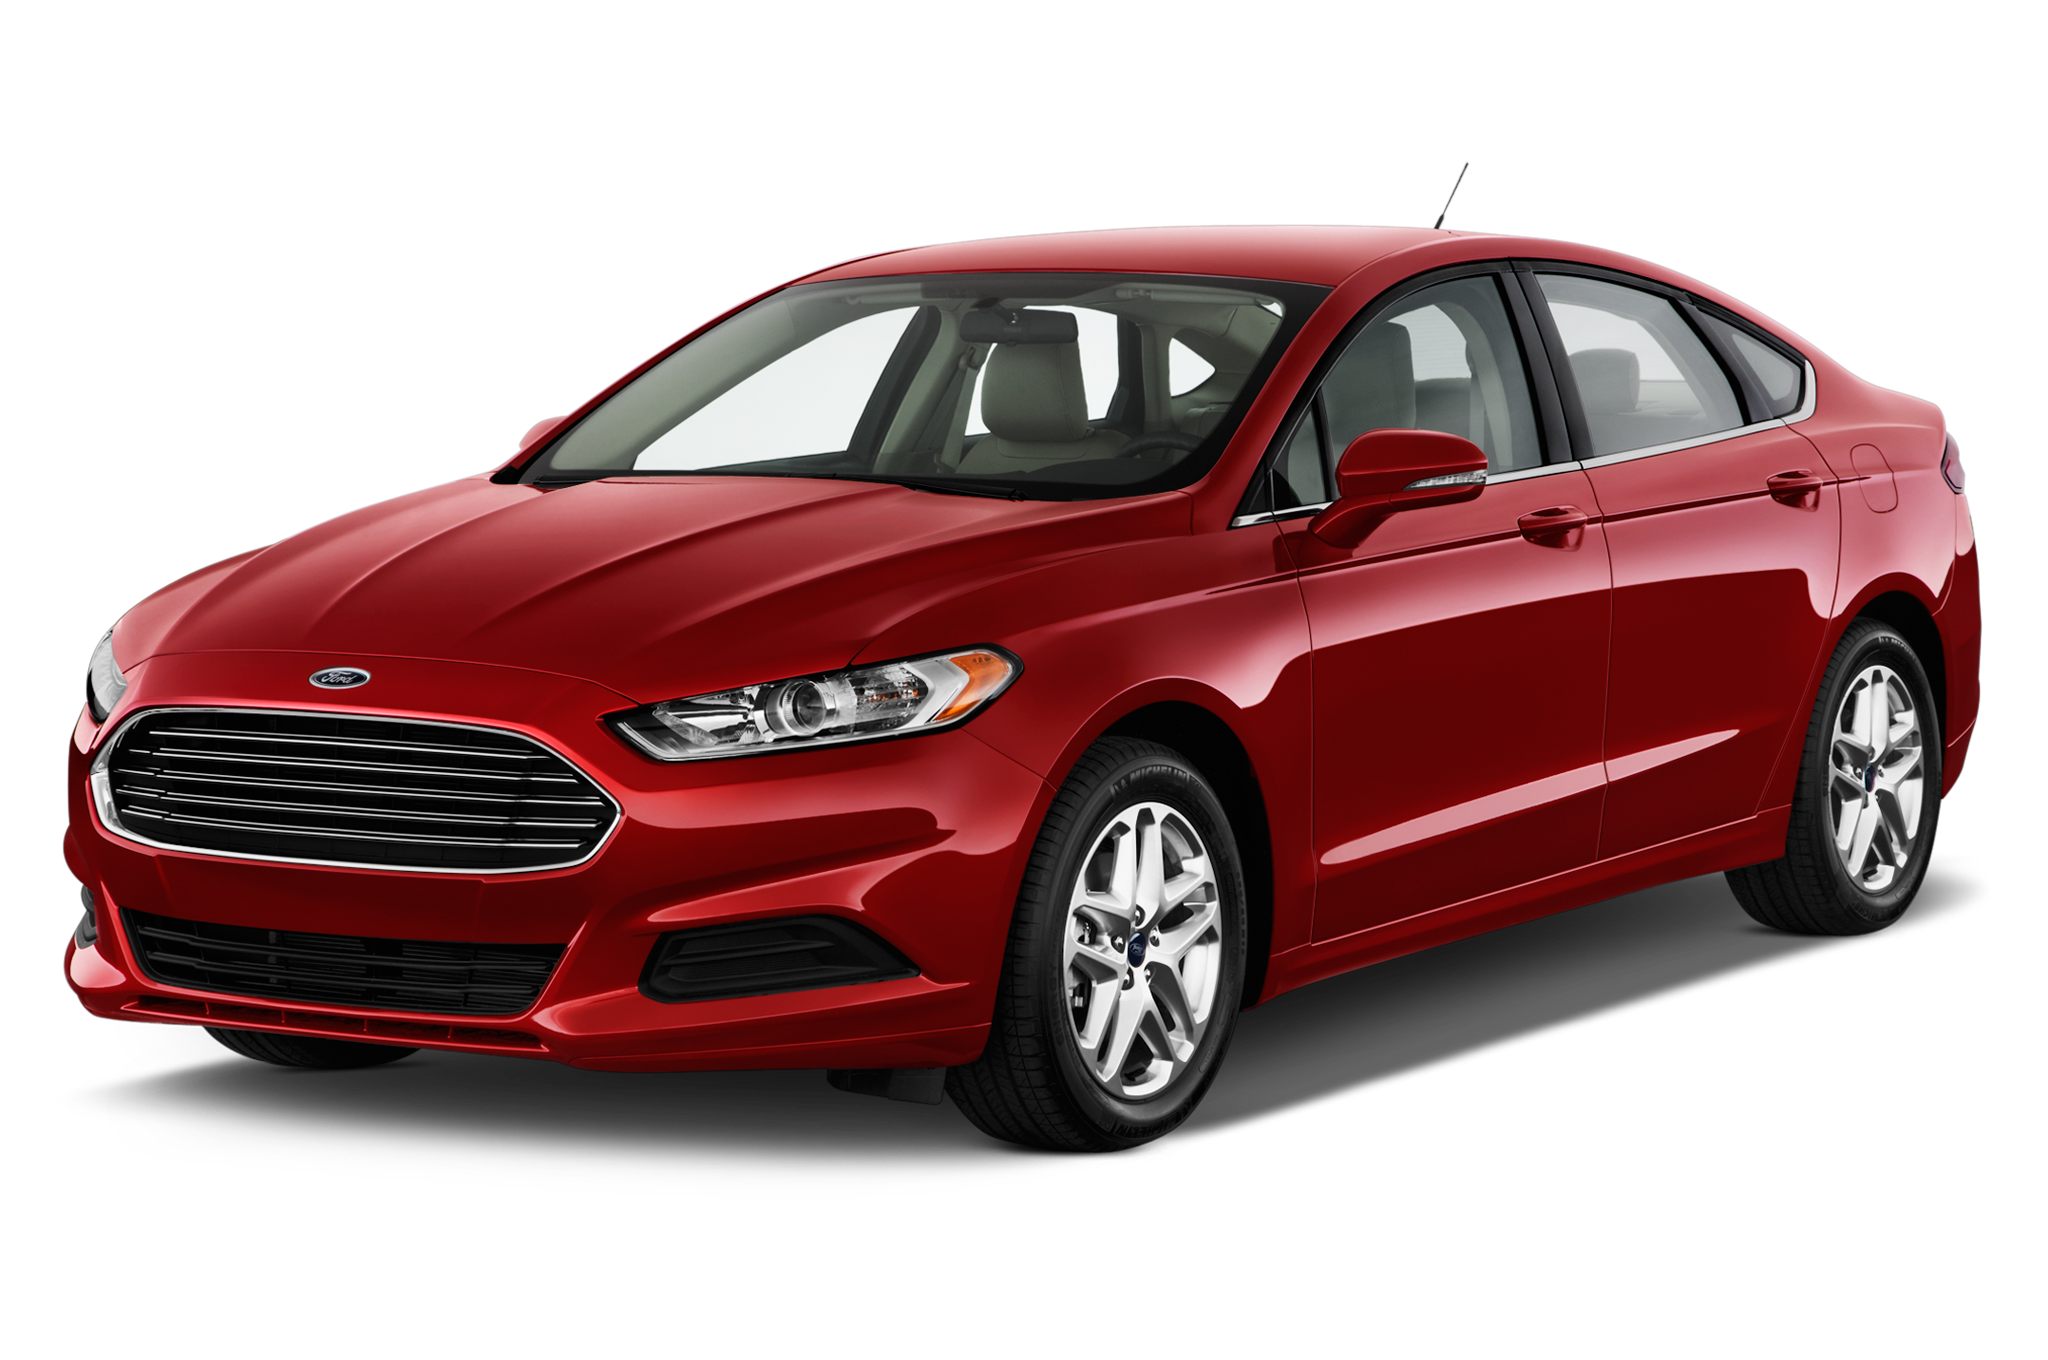 2015 Ford Fusion #20